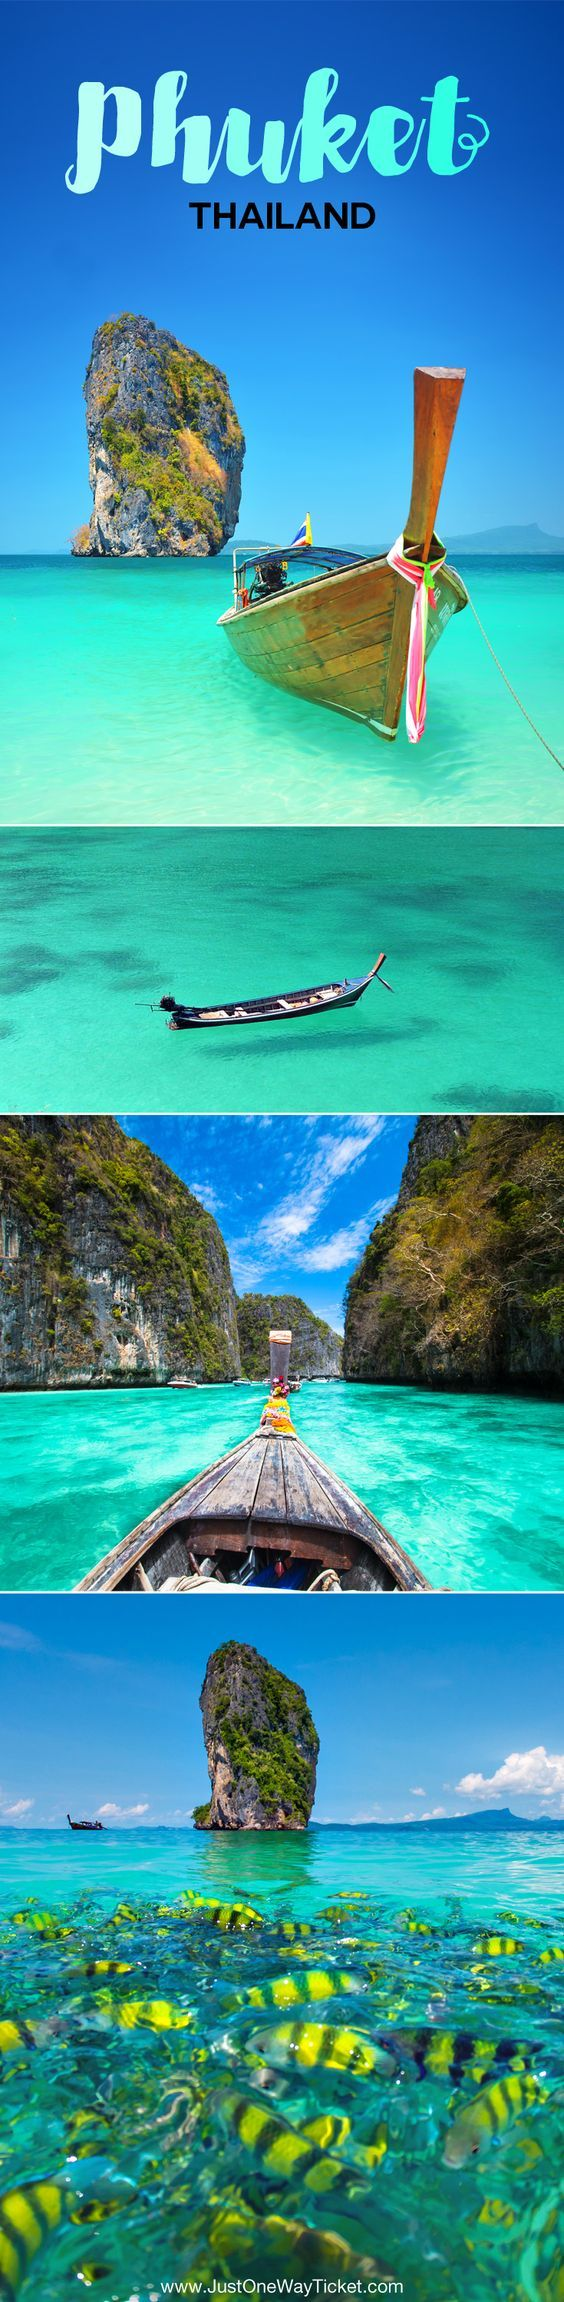 The Ultimate Guide To Phuket: Things To Do, Extraordinary Adventures + Places To Stay http://bookinganimal.com/